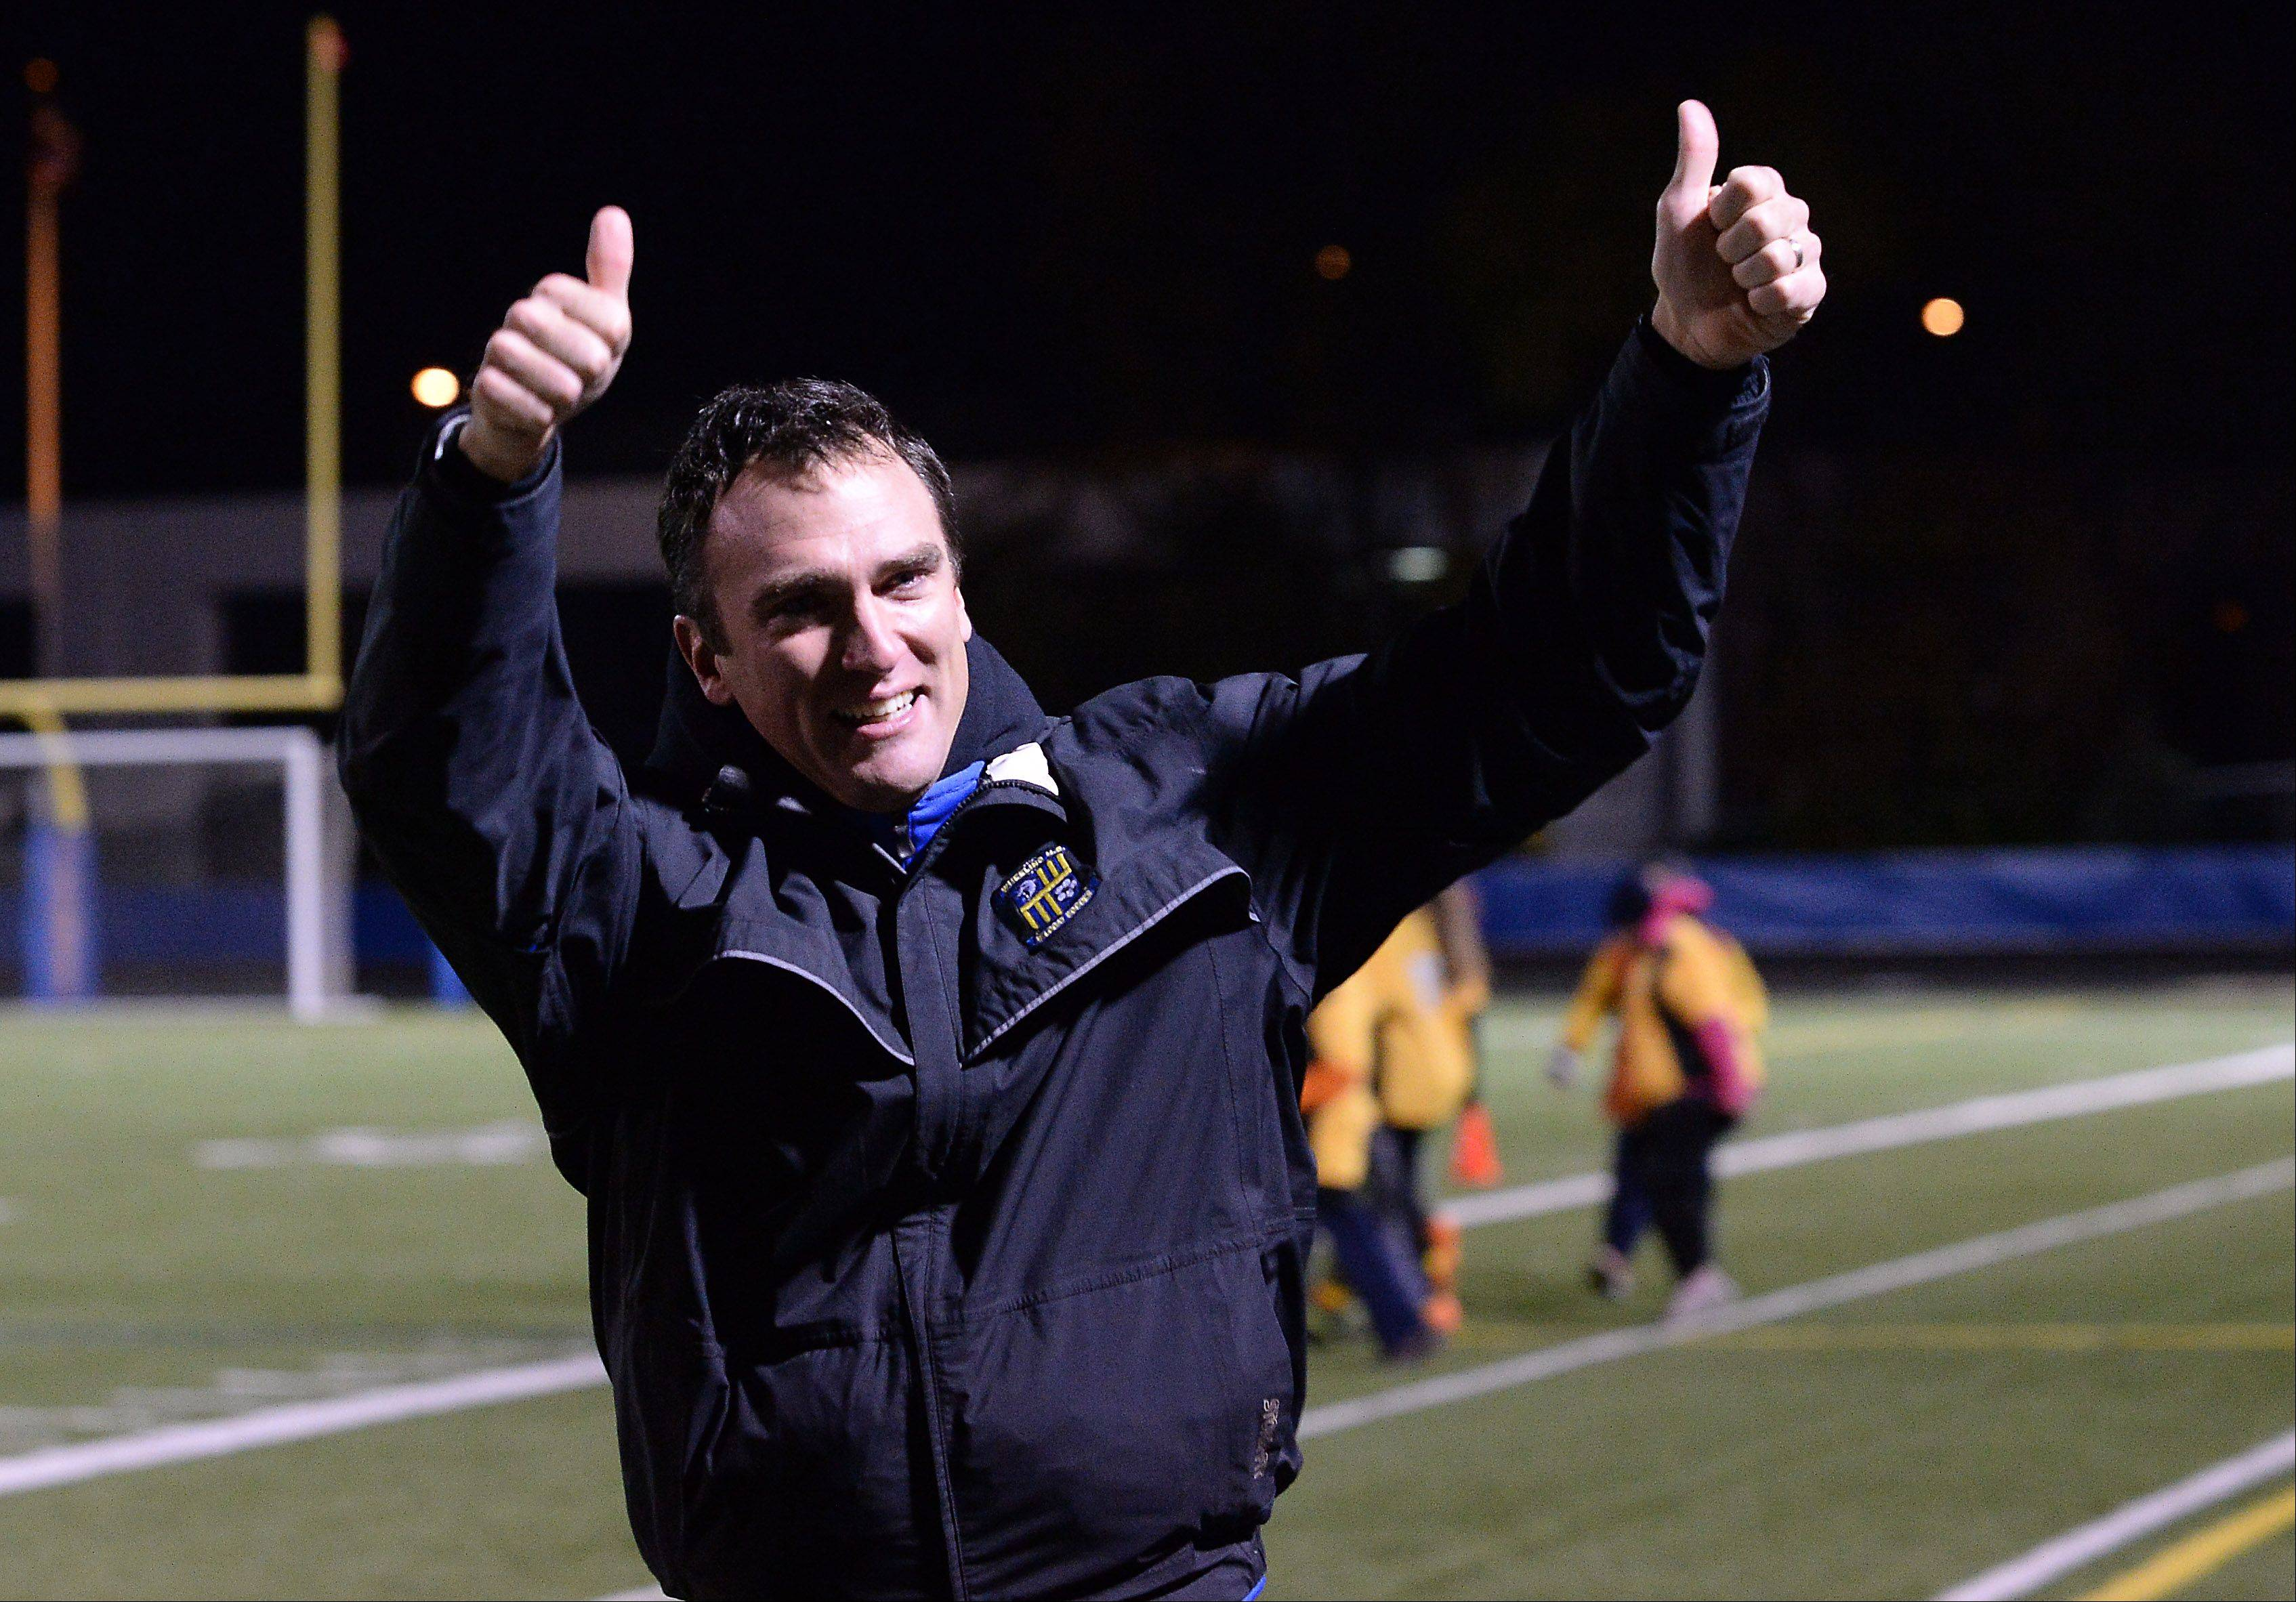 Wheeling coach Ed Uhrik gives the thumbs-up to fans after the Wildcats' 3-0 victory over Lake Park in the Class 3A boys soccer state semifinals at Hoffman Estates on Friday.